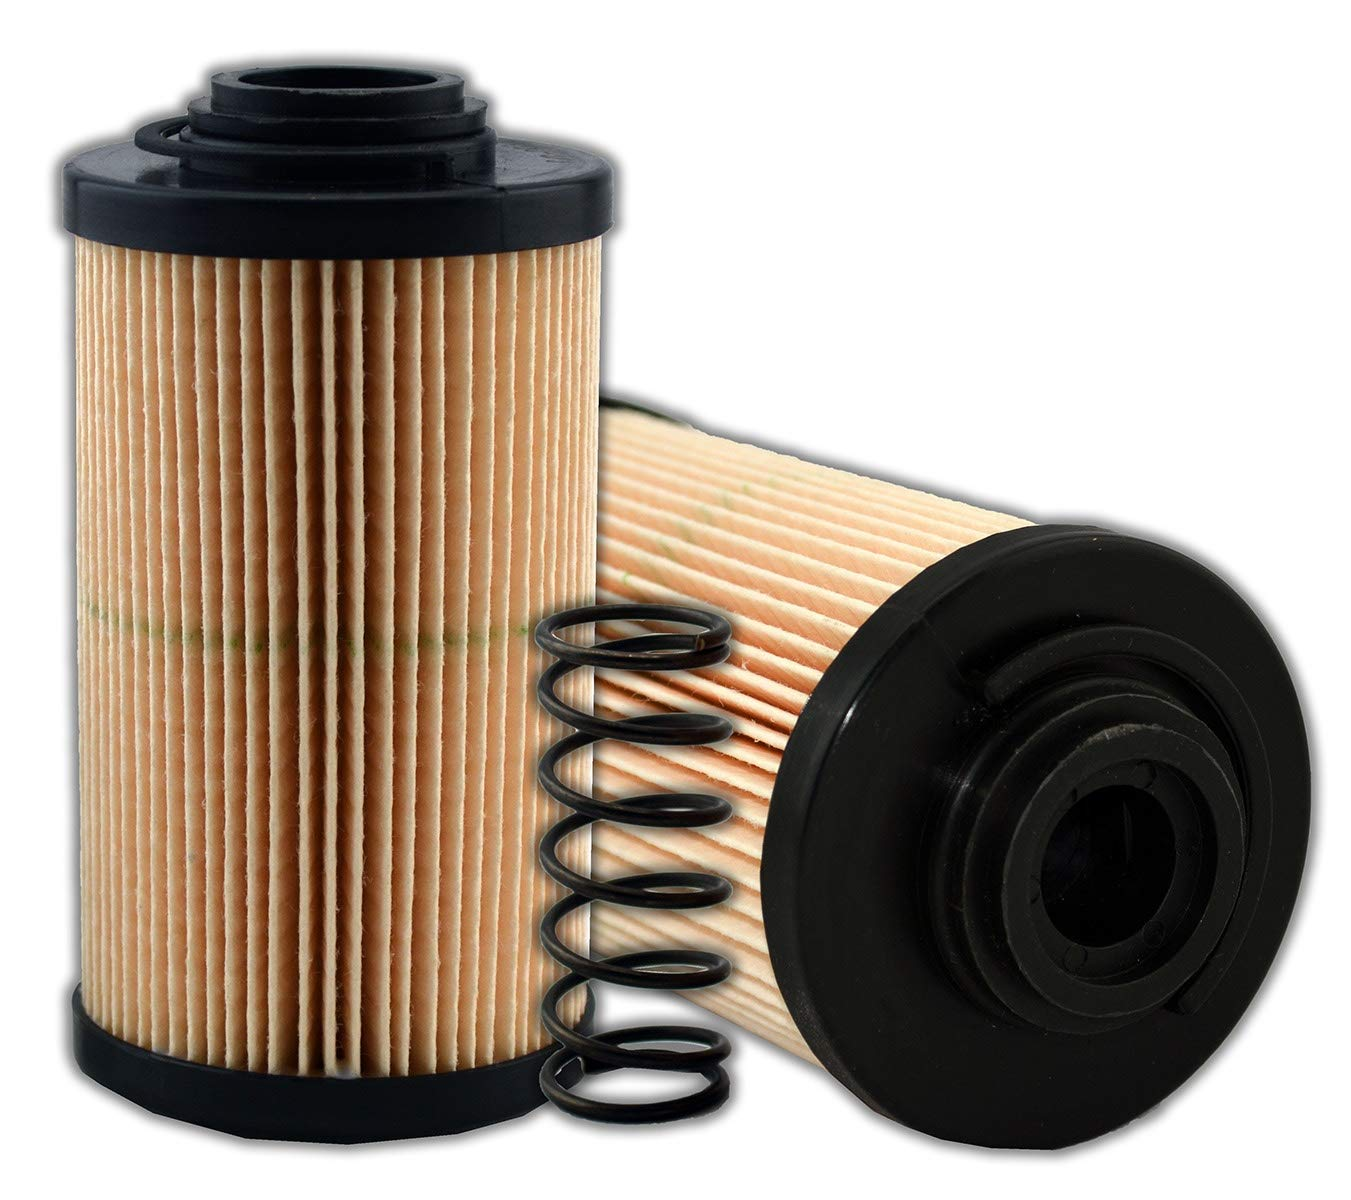 MP FILTRI CSG100P10A Replacement Spin-On Hydraulic Filter by Main Filter Inc 3 Pack of Filters